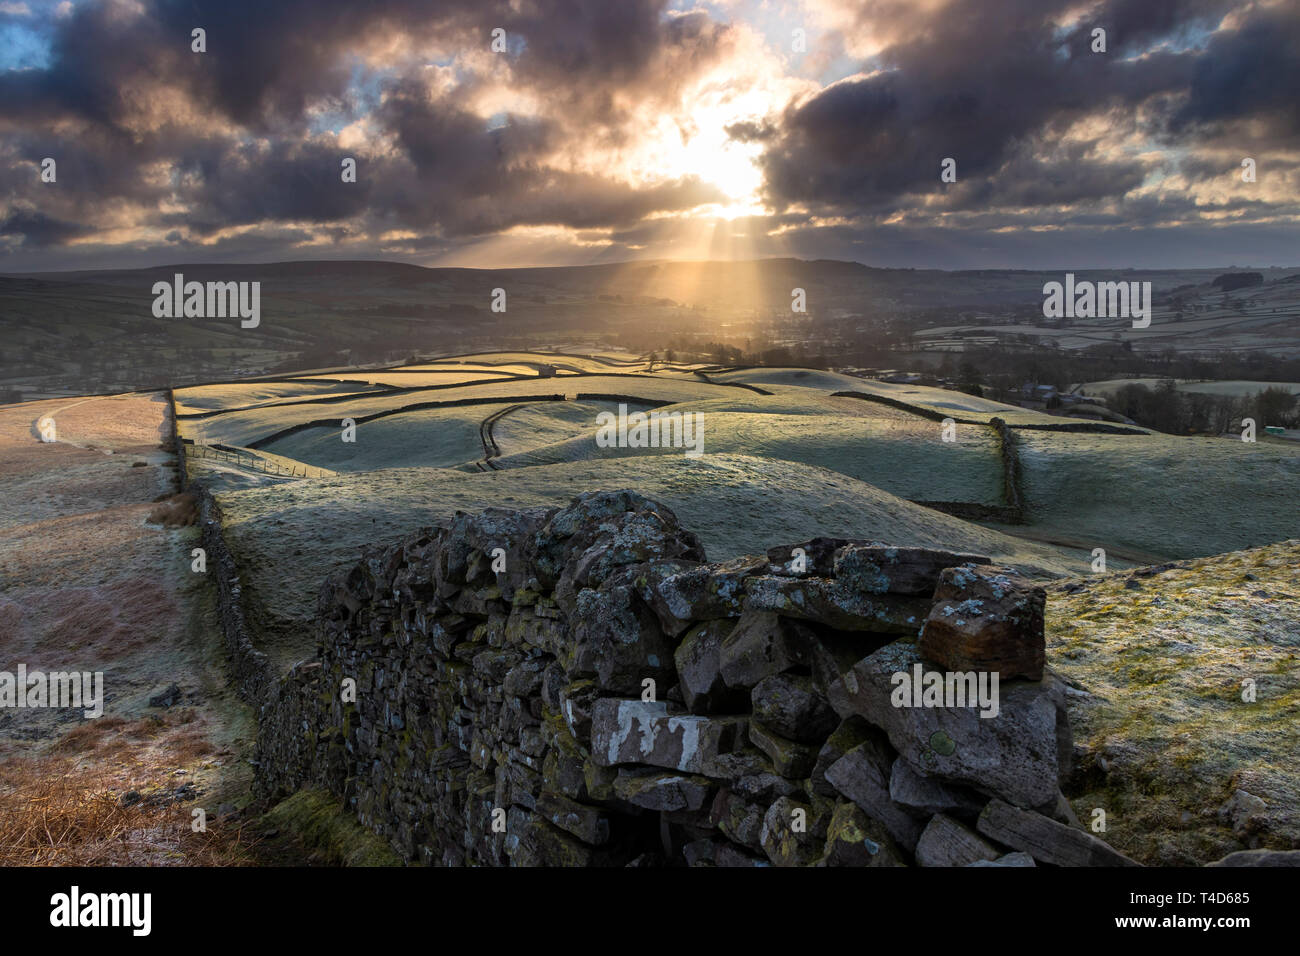 The View From the Ancient Tumulus of Kirkcarrion as Crepuscular Rays Sweep across the Frost Coated Fields Below, Lunedale, Teesdale, County Durham, UK - Stock Image